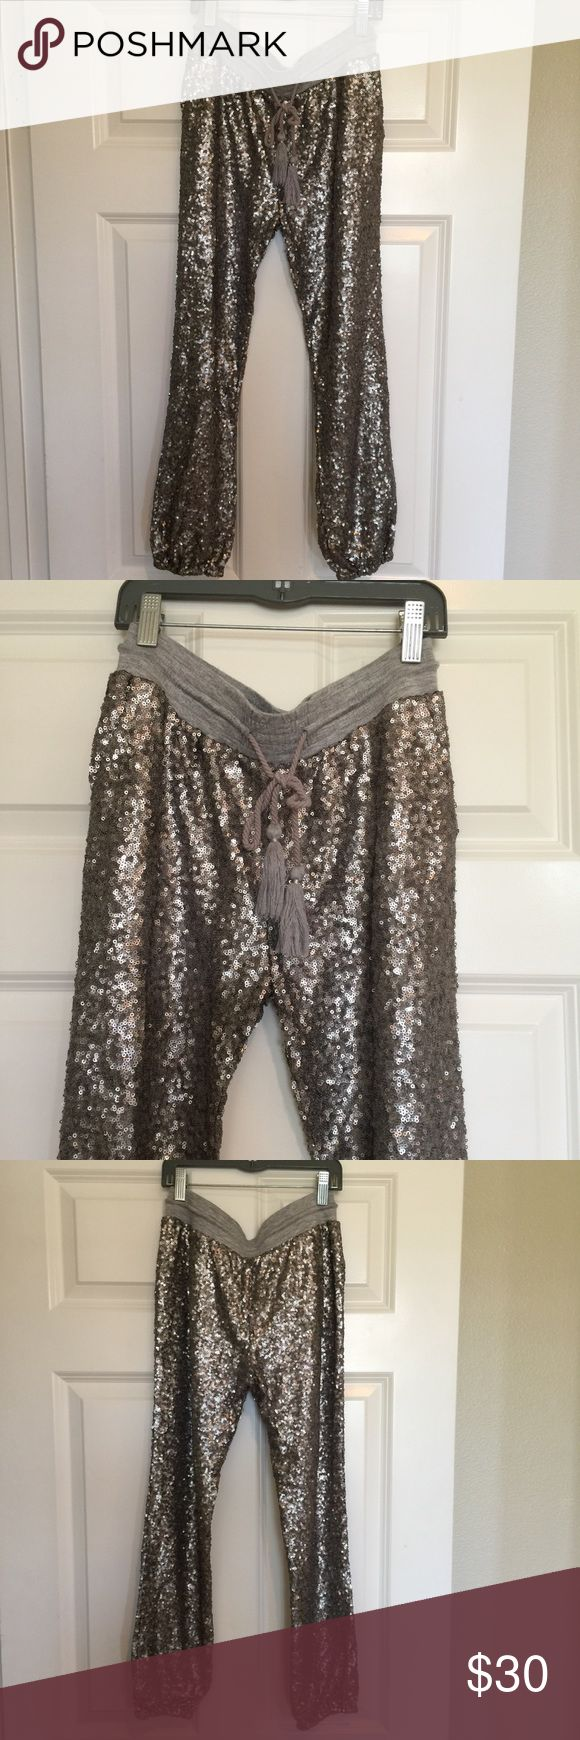 Grey sequin jogger pants These bad boys are super comfy, fun jogger pants! All throughout grey, no sequins have fallen off. In very great condition! Amuse Society Pants Track Pants & Joggers